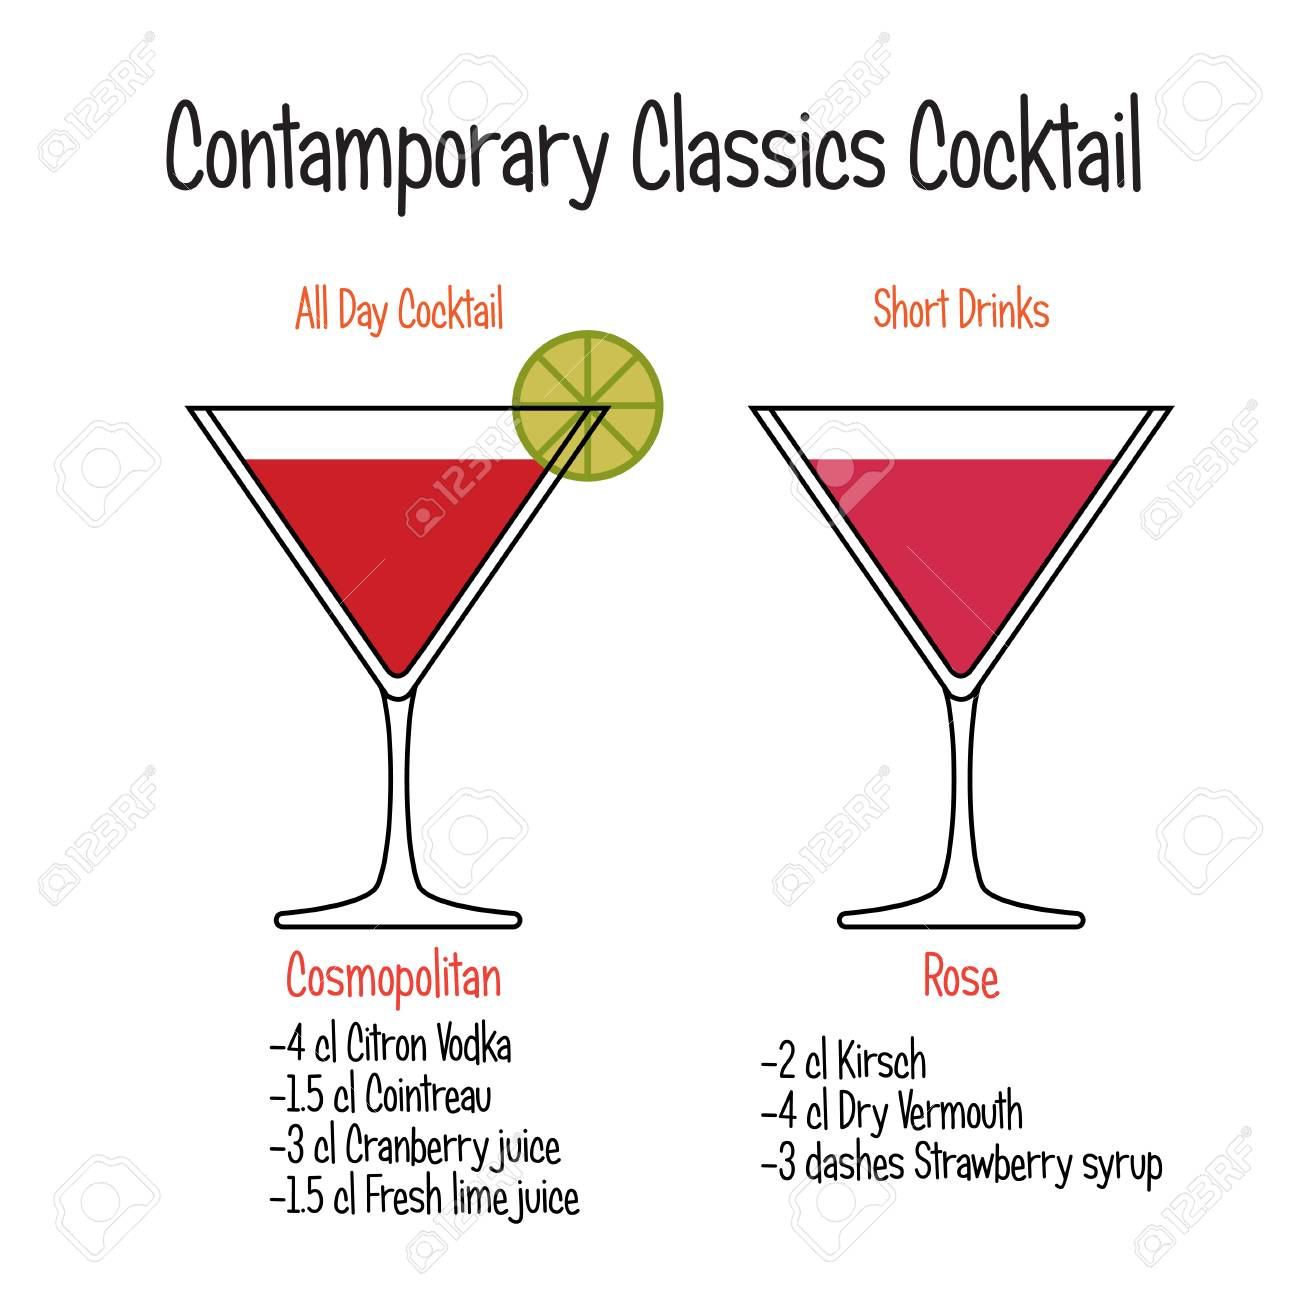 Cosmopolitan Cocktail And Rose Cocktail Vector Recipe Royalty Free Cliparts Vectors And Stock Illustration Image 117227218